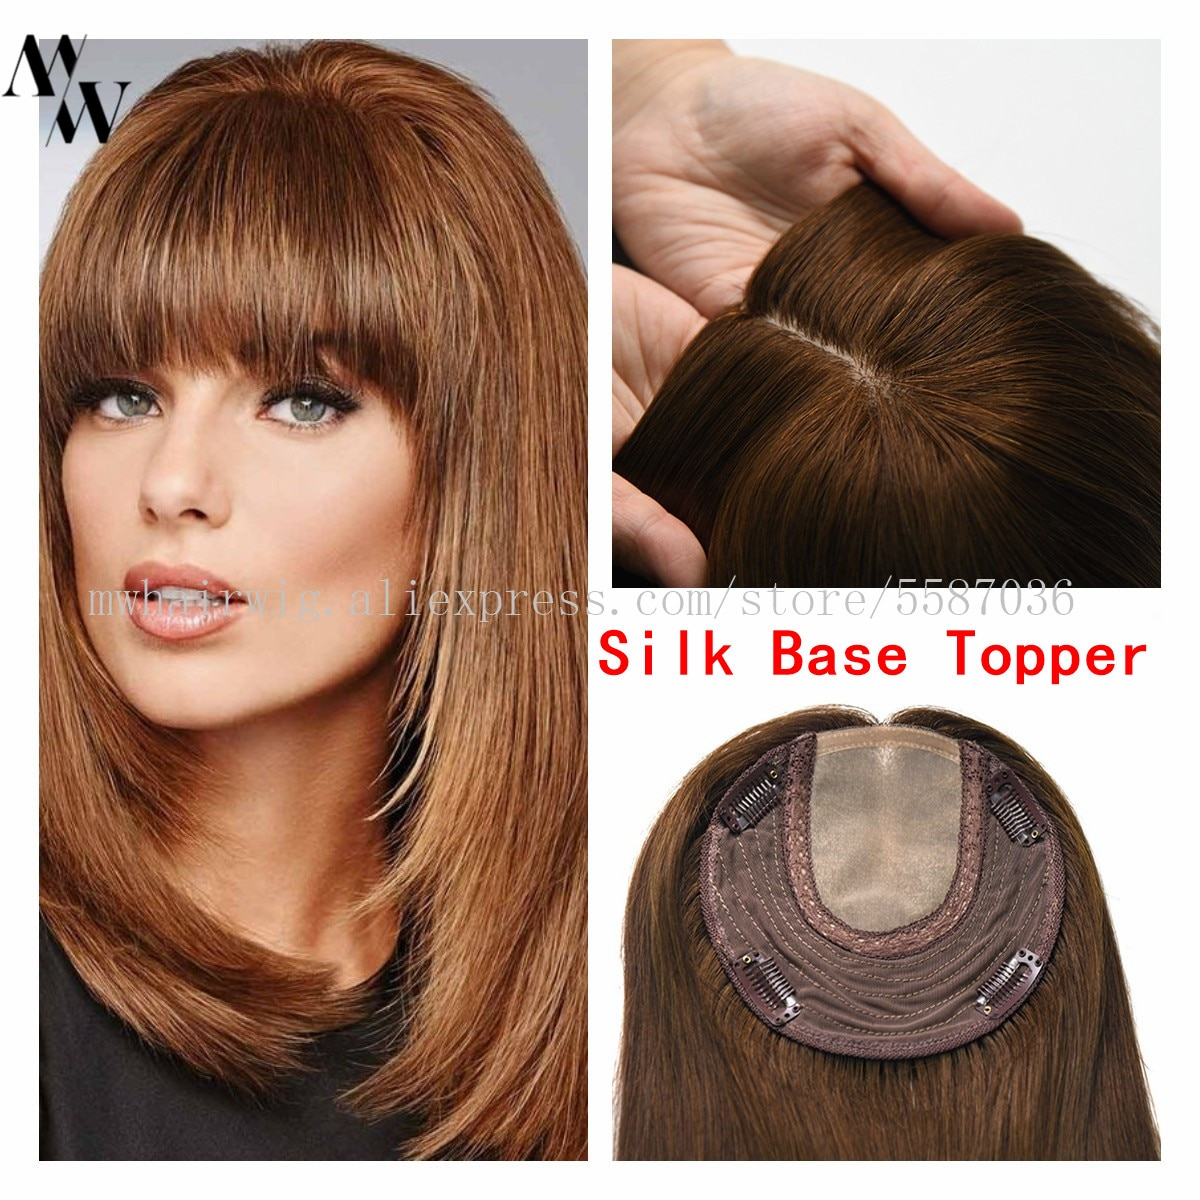 MW 6*6.5 Natural Straight Human Hair Topper Wig For Women Silk Base With Clips In Hair Toupee Remy Hairpiece 20